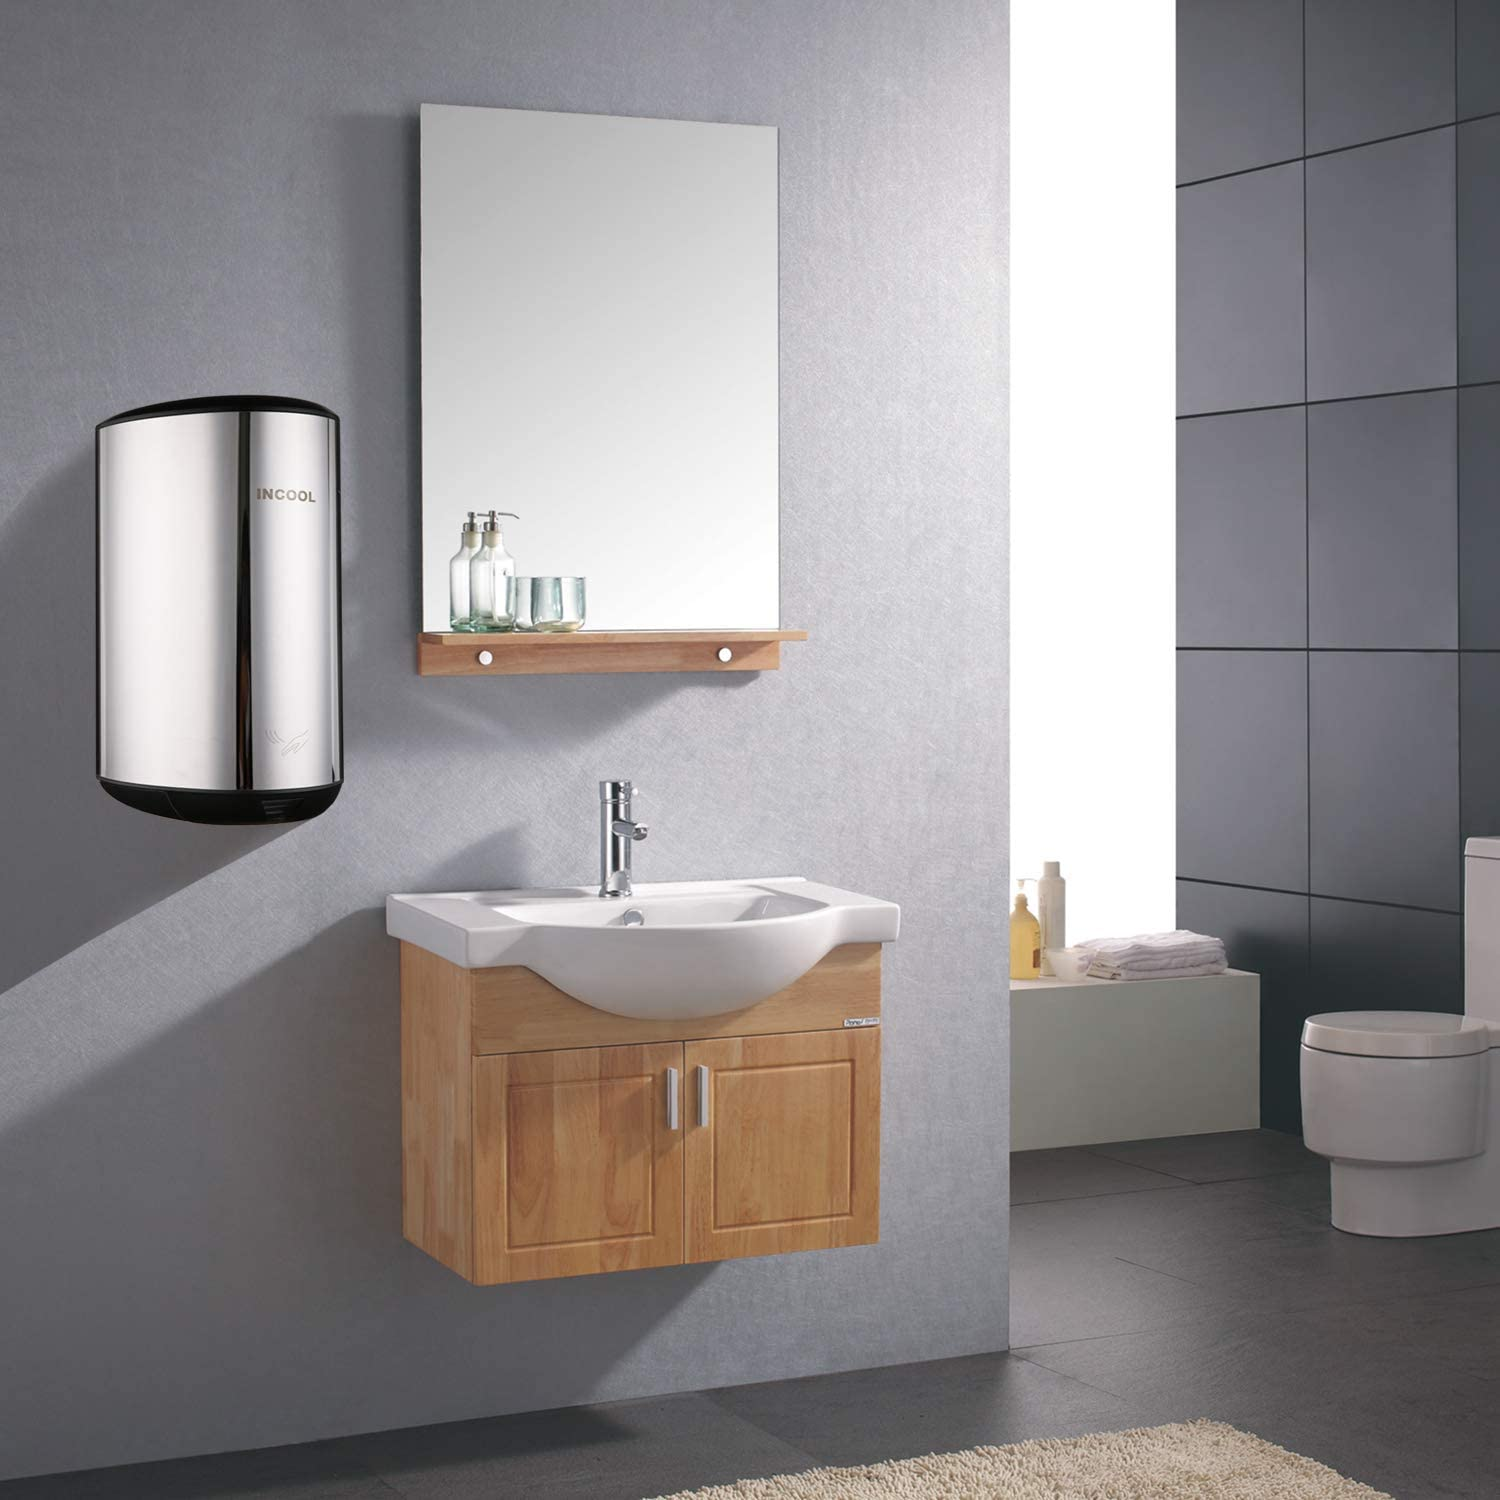 INCOOL Hand Dryer High Speed Automatic Commercial Hand Dryer for Bathroom-Polihed